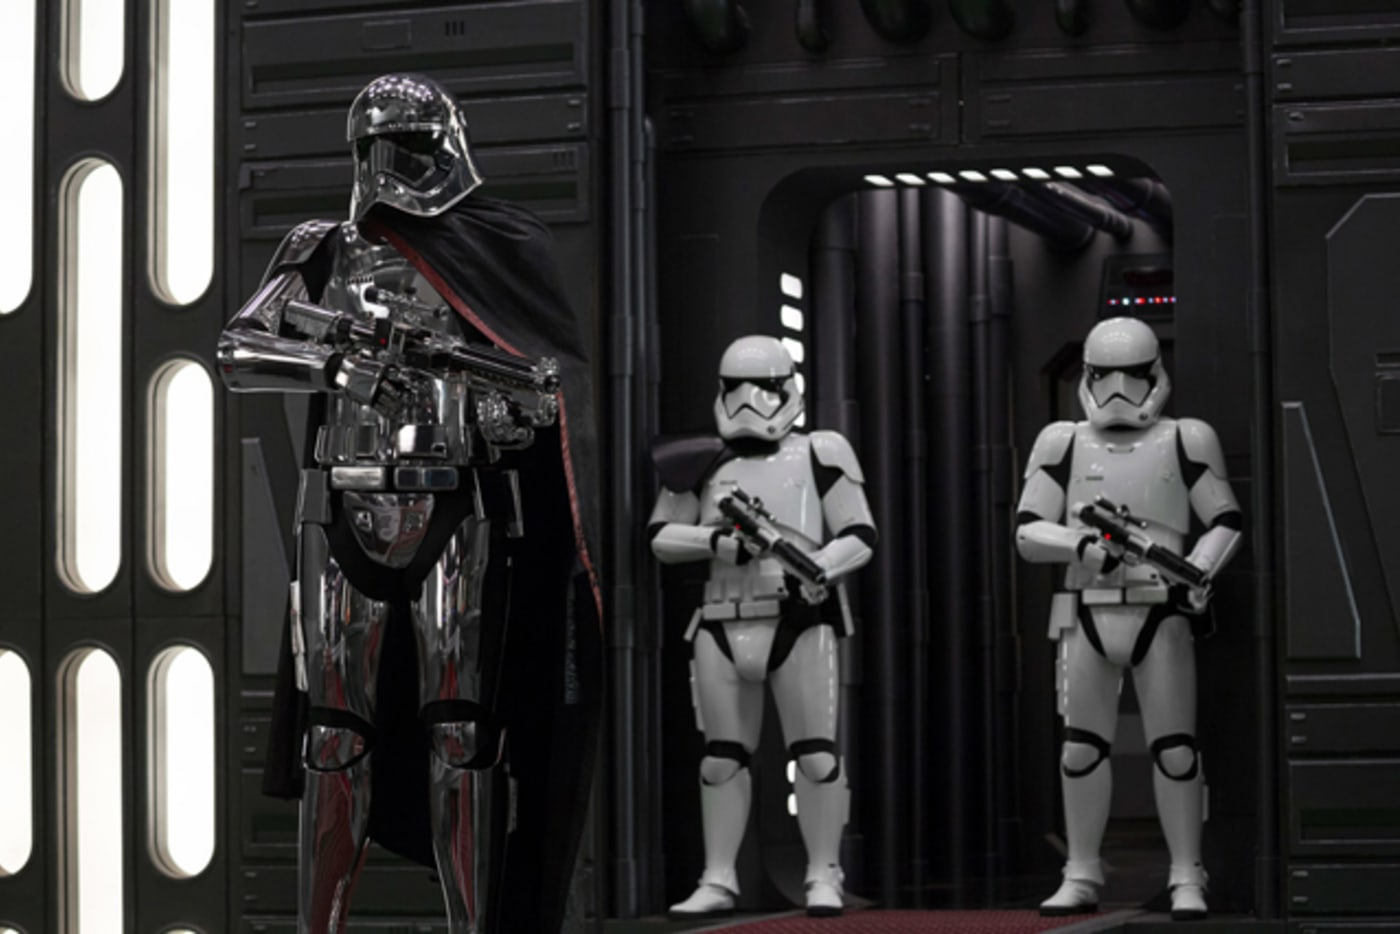 Captain Phasma and some Stormtroopers from 'Star Wars: The Last Jedi'